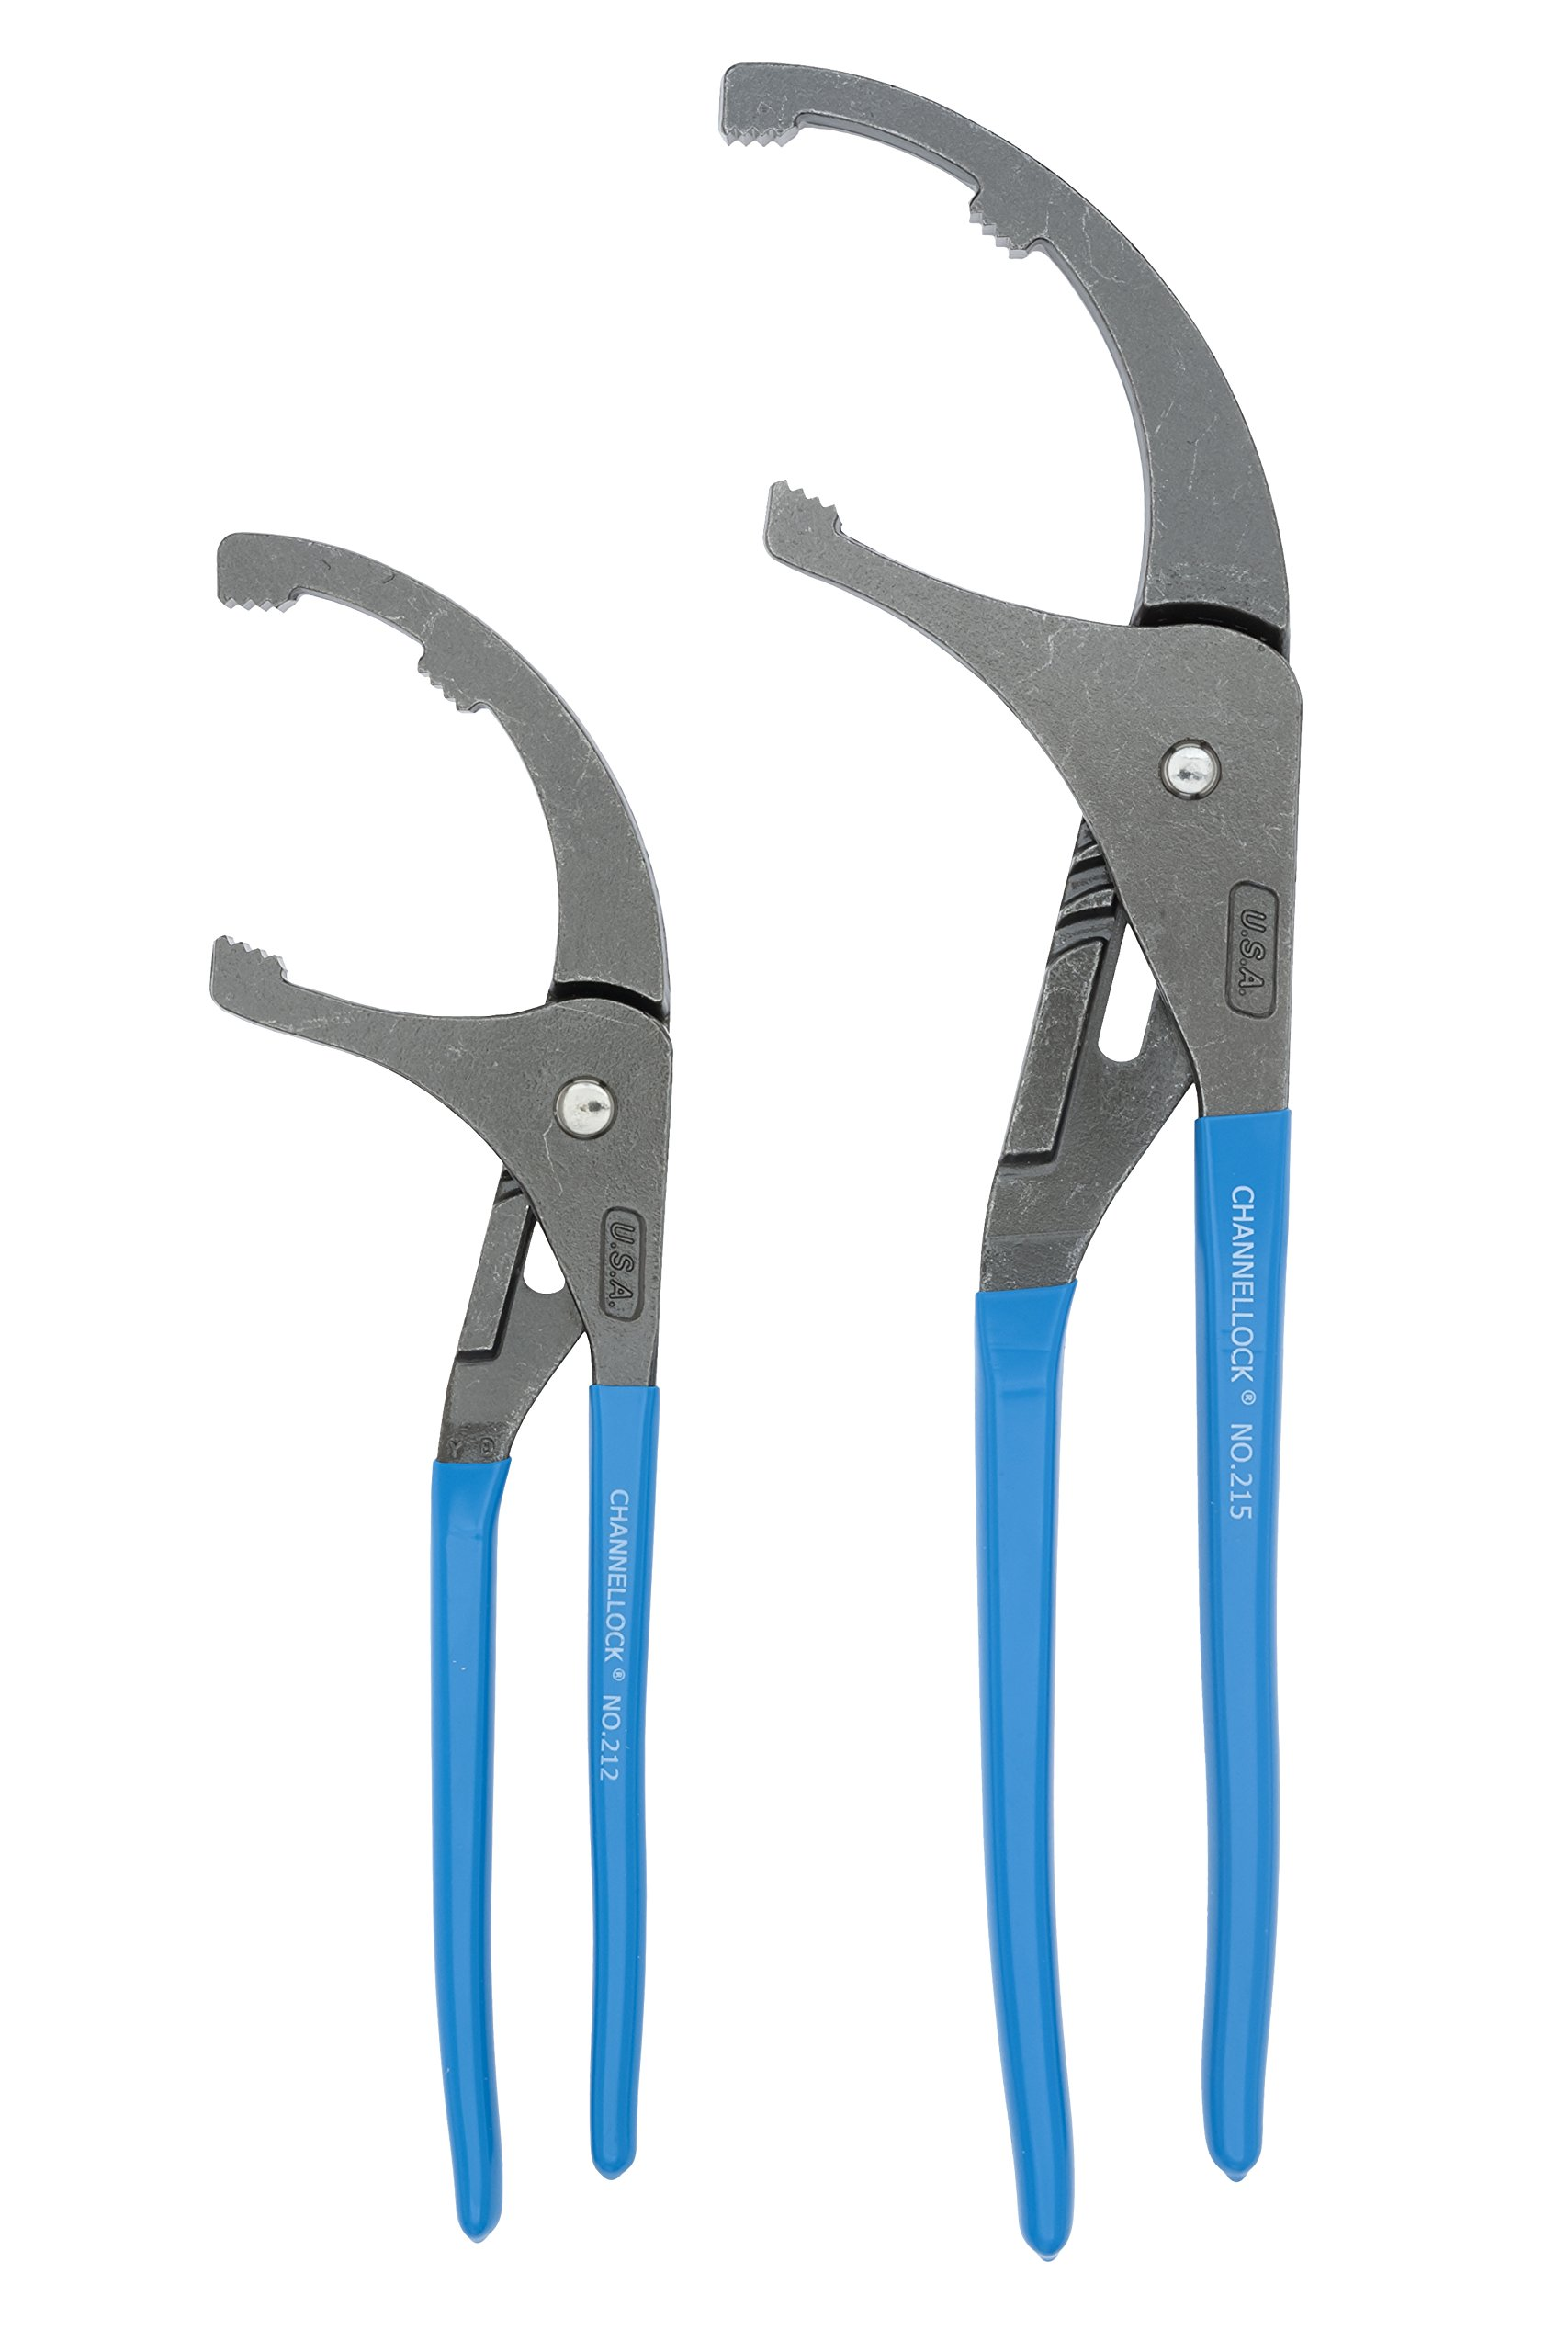 Channellock OF-1 2-Piece Oil Filer/PVC Plier Gift Set: 12-Inch and 15-Inch by Channellock